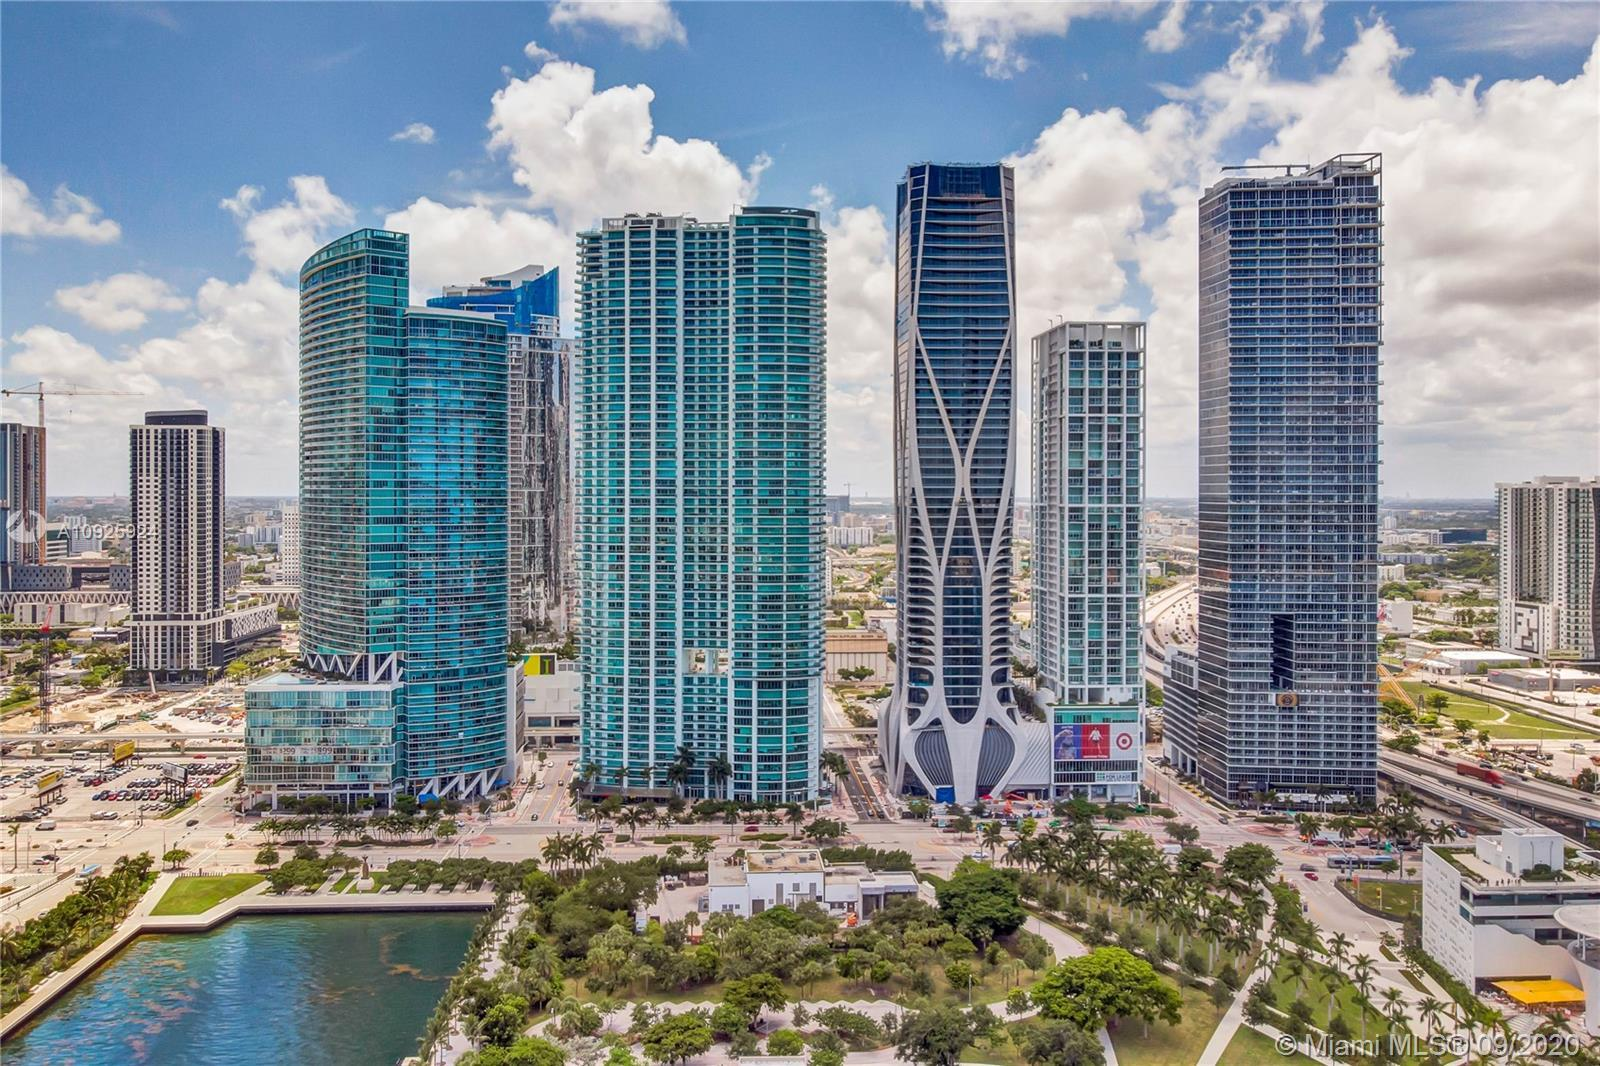 Large 3 bedrooms + Den, 3 Full Baths flow through the unit overlooking Biscayne Bay Views, City, Por